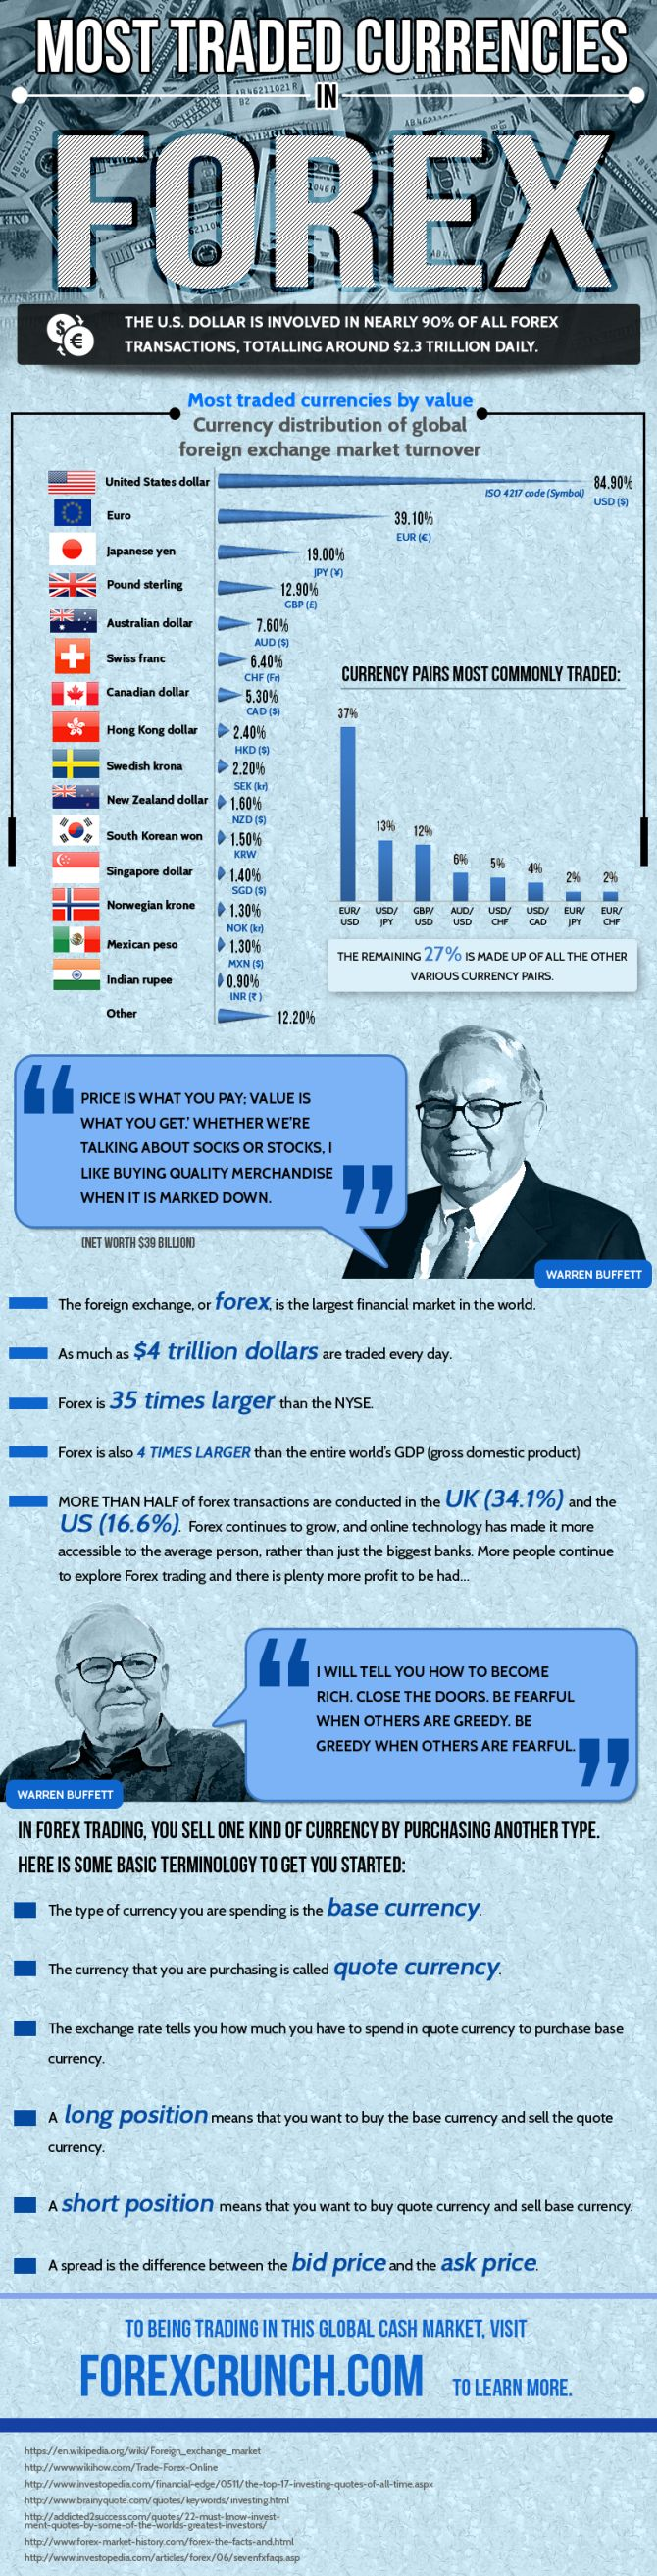 Most Traded Currencies – Infographic